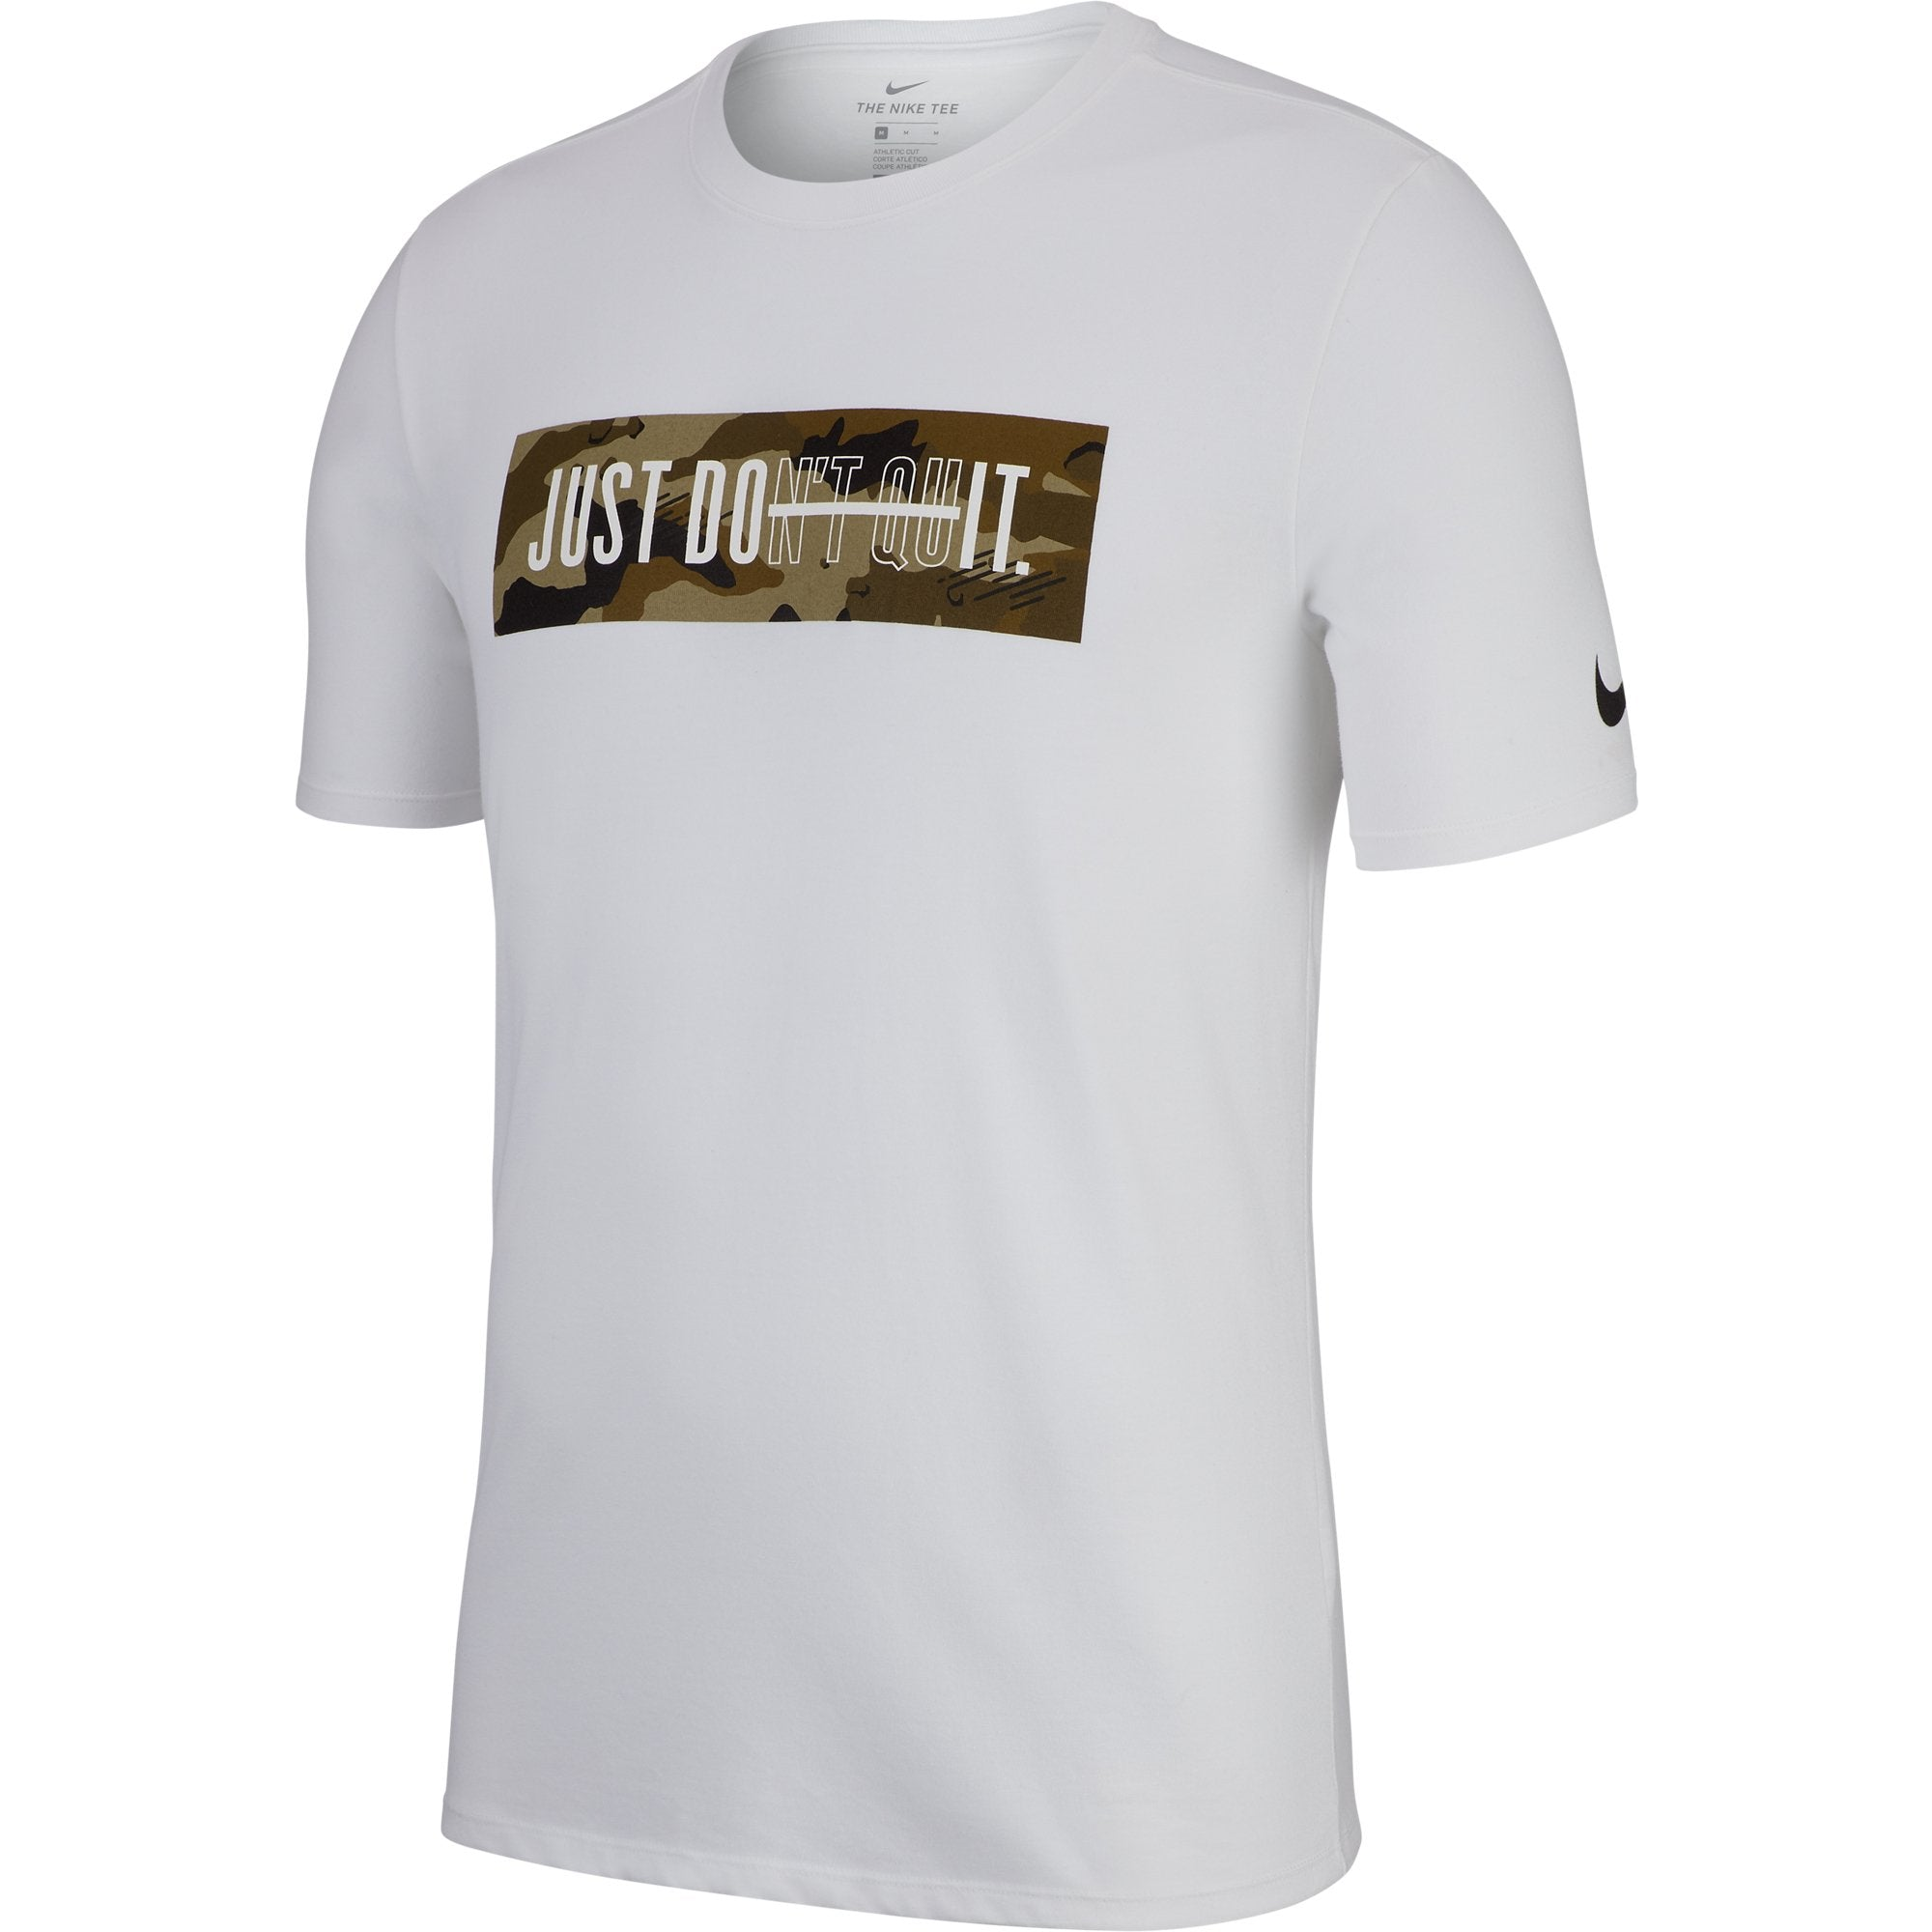 just don't quit nike shirt